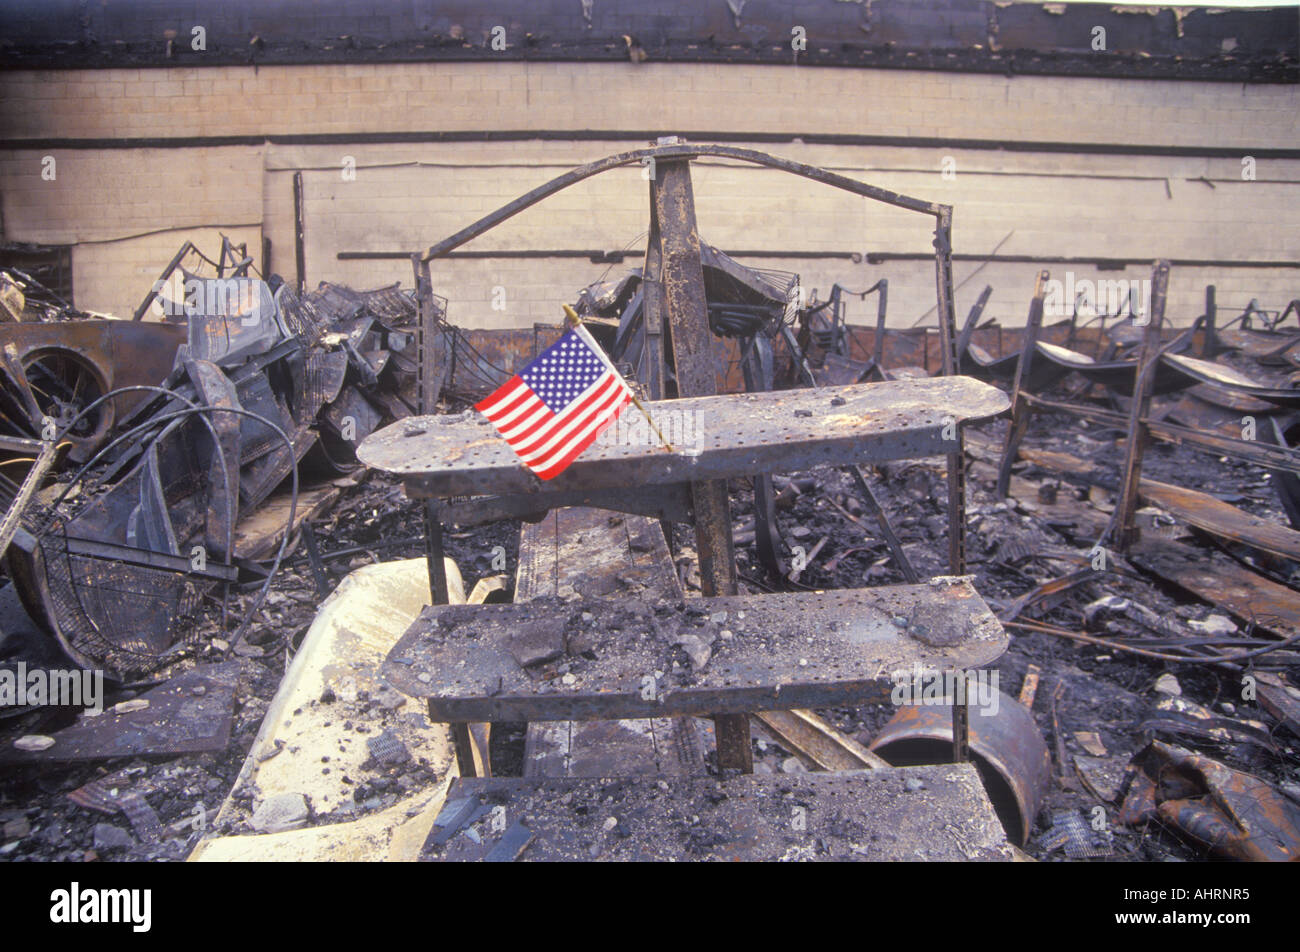 Small American flag at site of 1992 riots South Central Los Angeles California - Stock Image